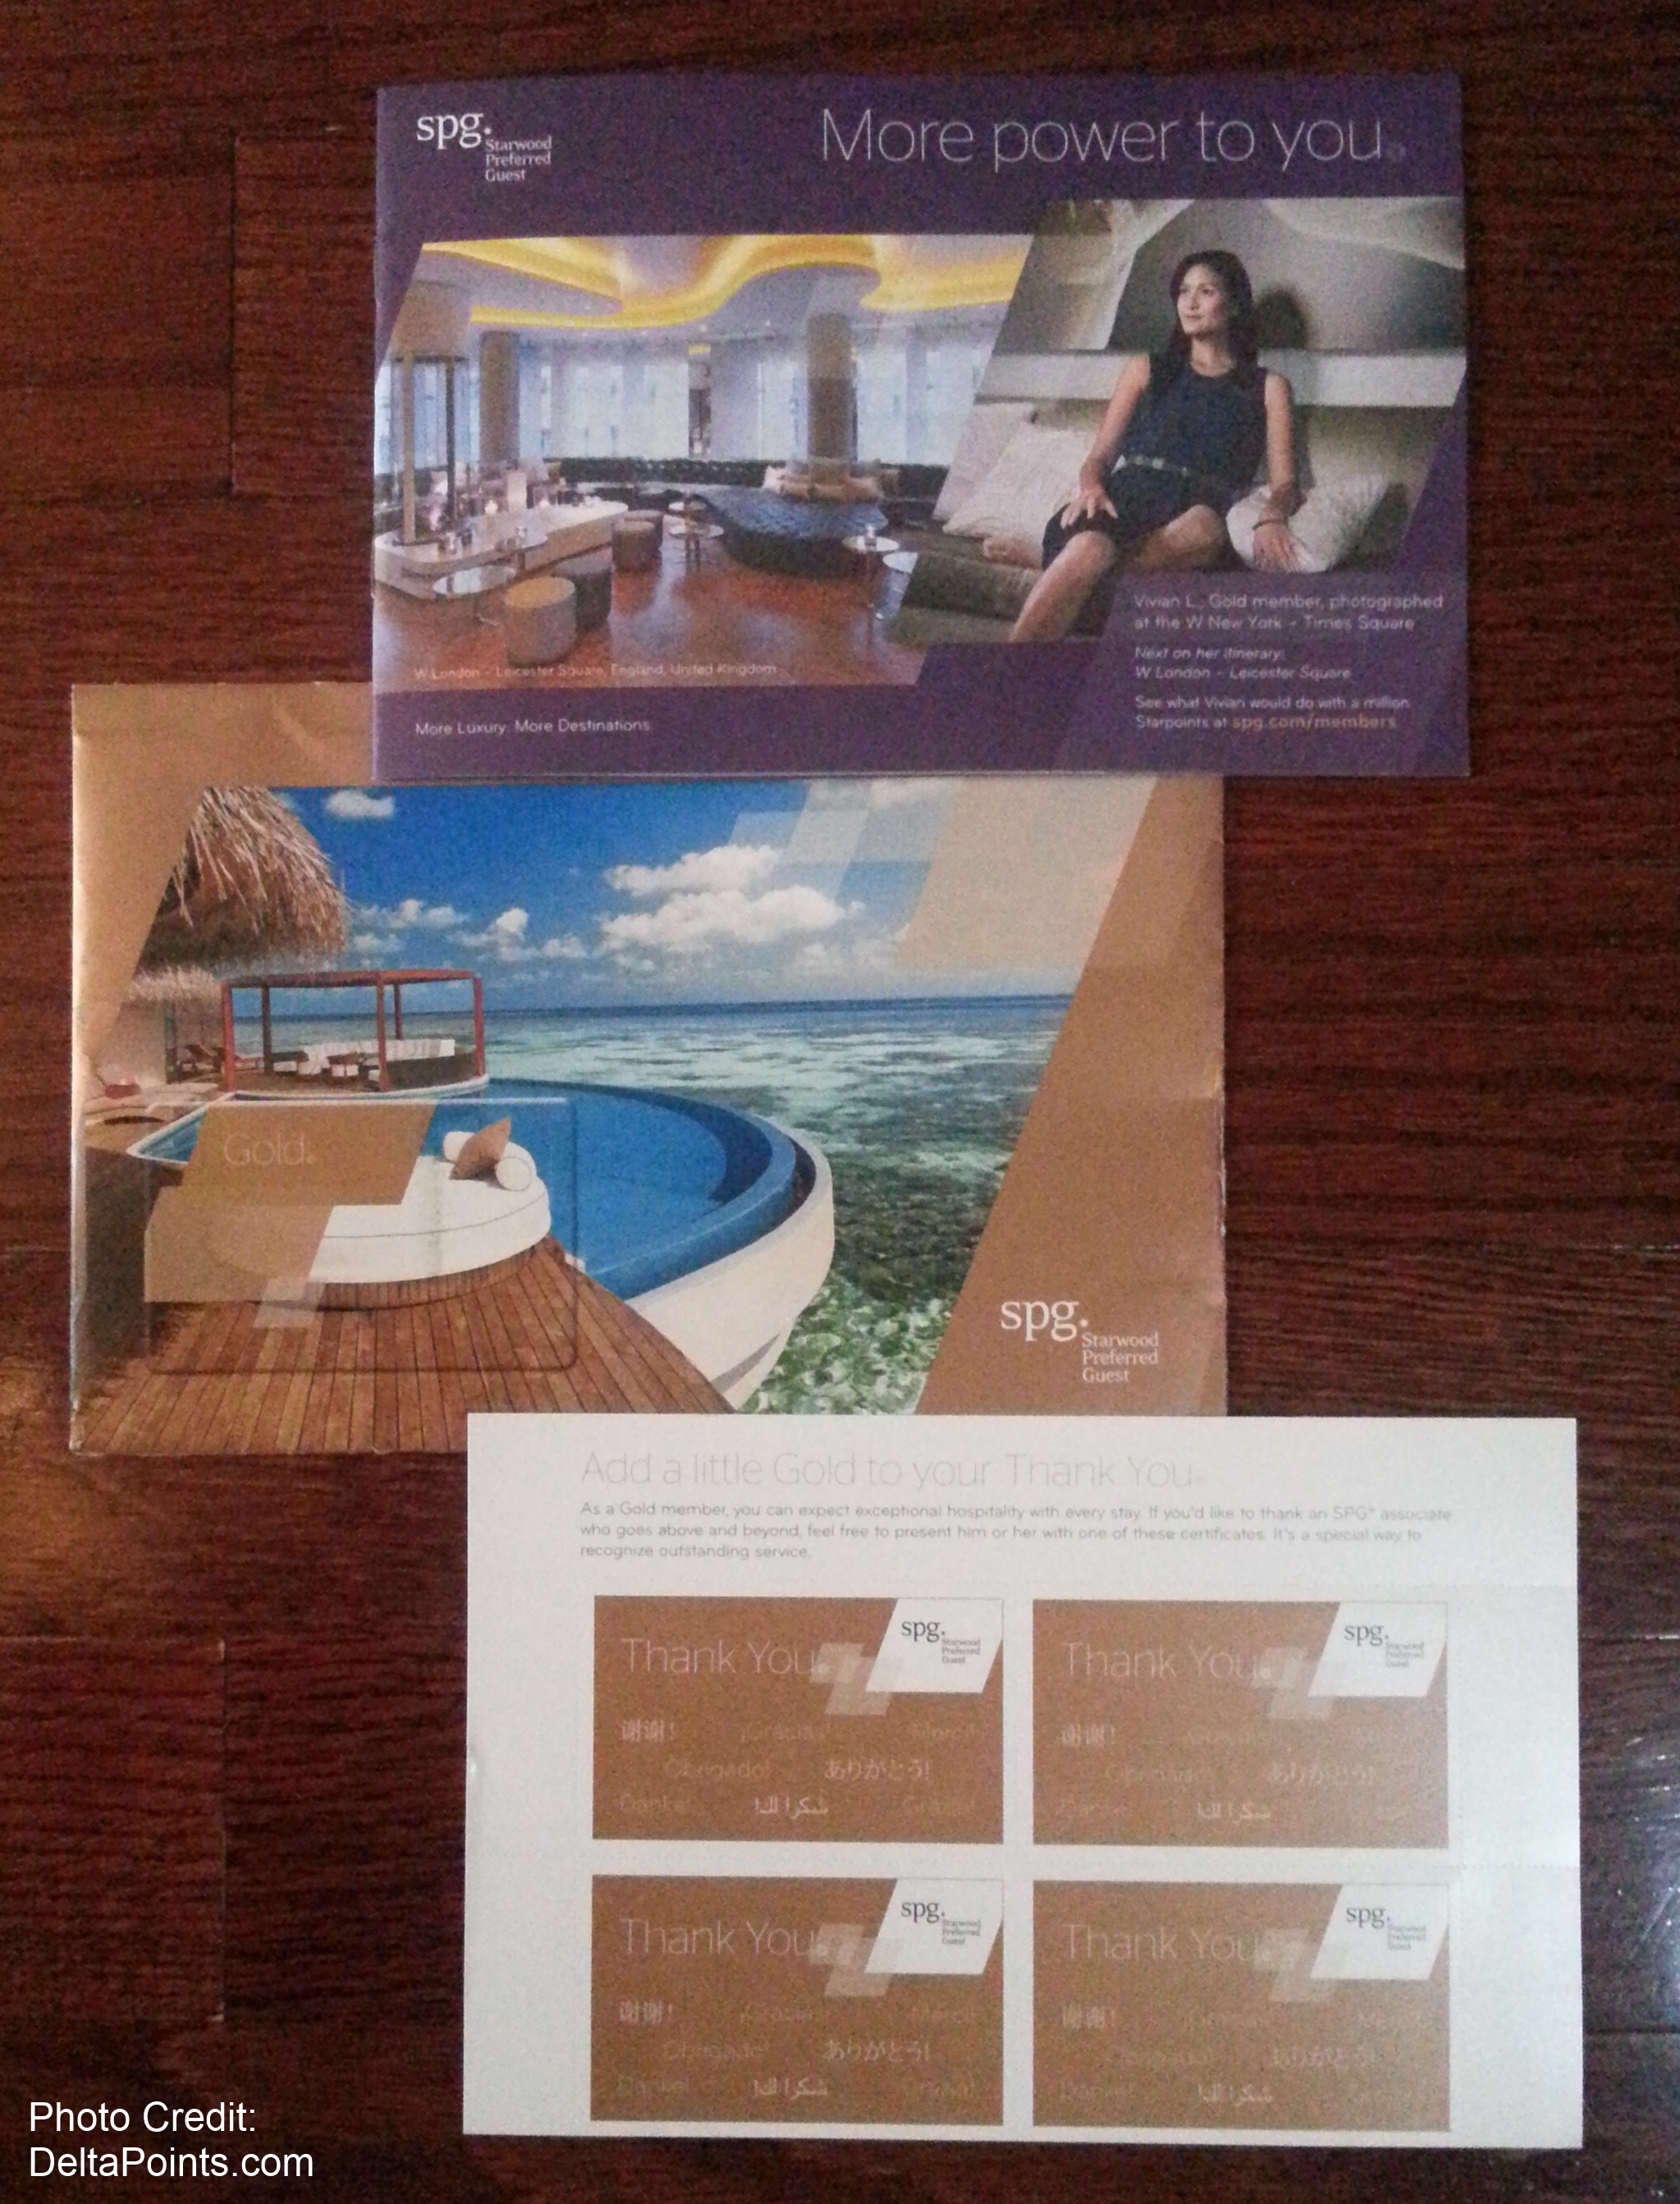 """my spg gold card hotel came today some """"new stuff"""" too"""